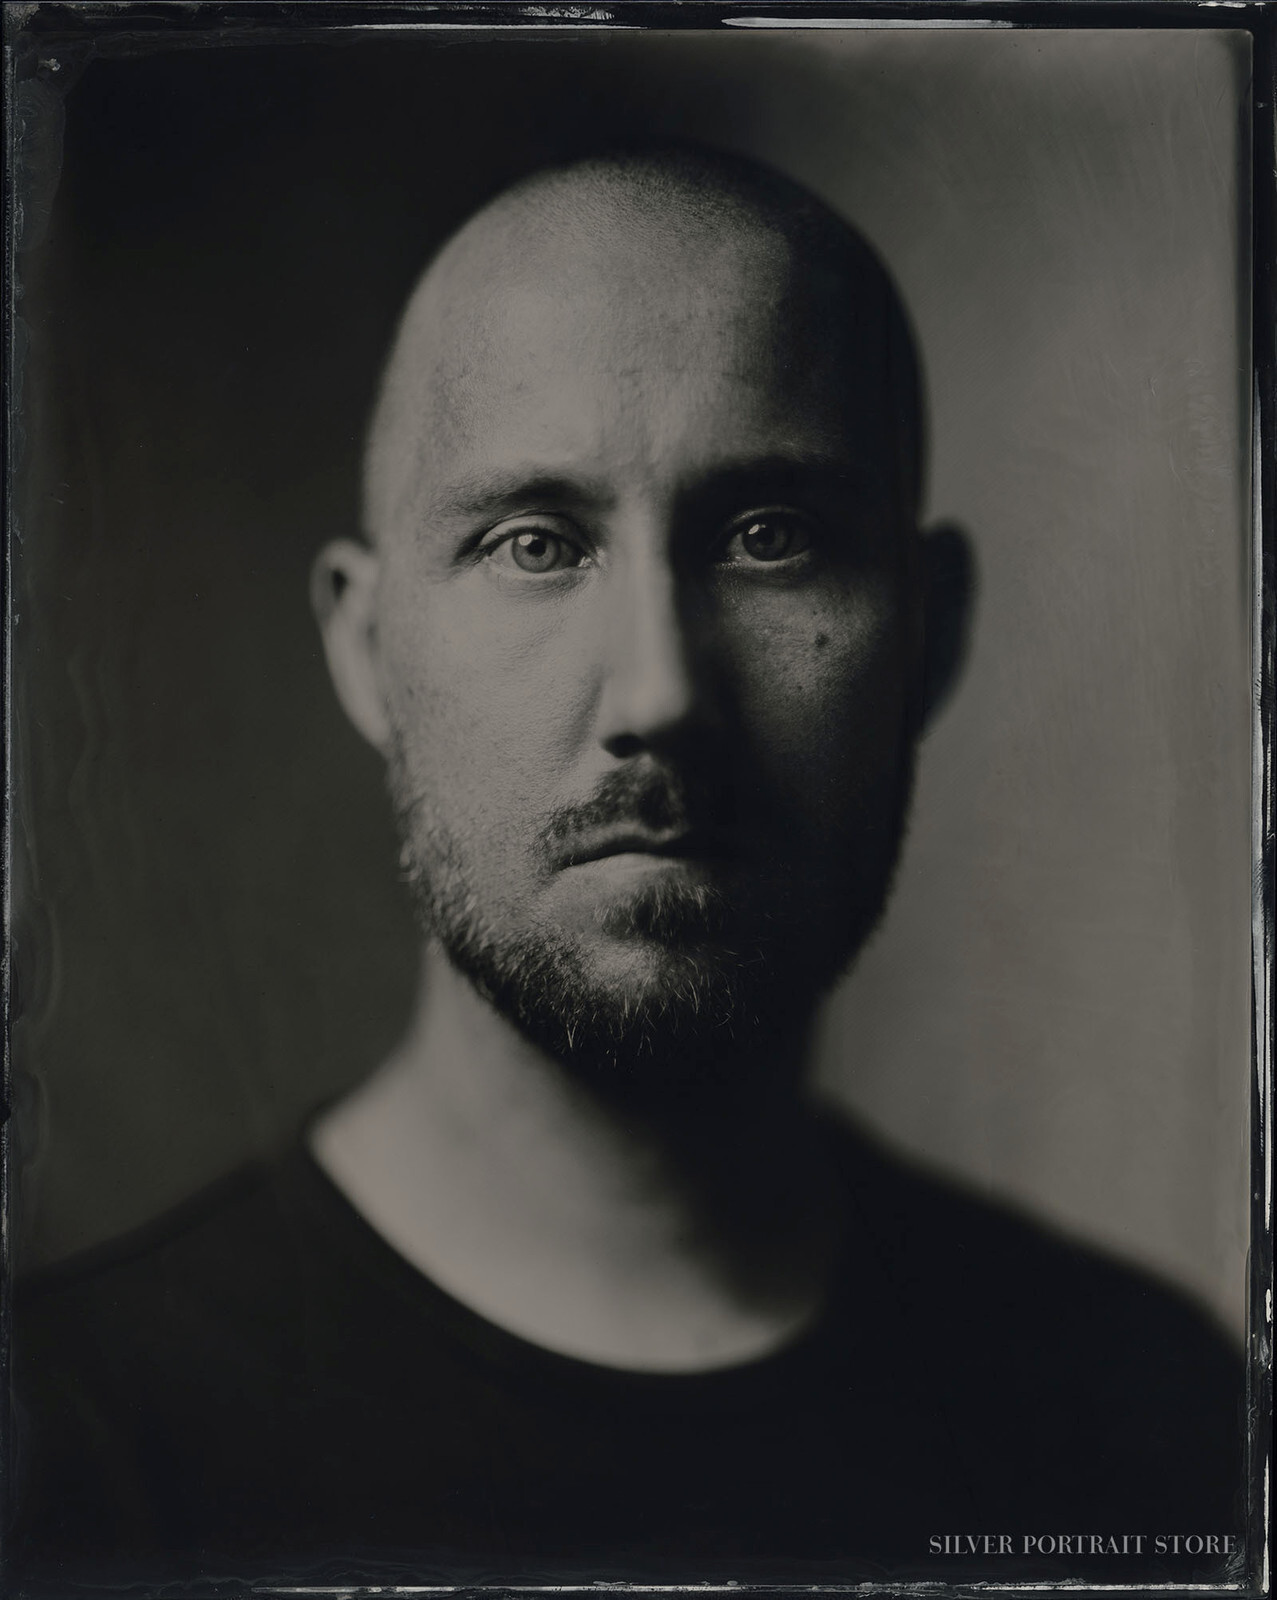 Andreas-Silver Portrait Store-scan from Wet plate collodion-Tintype 20 x 25 cm.